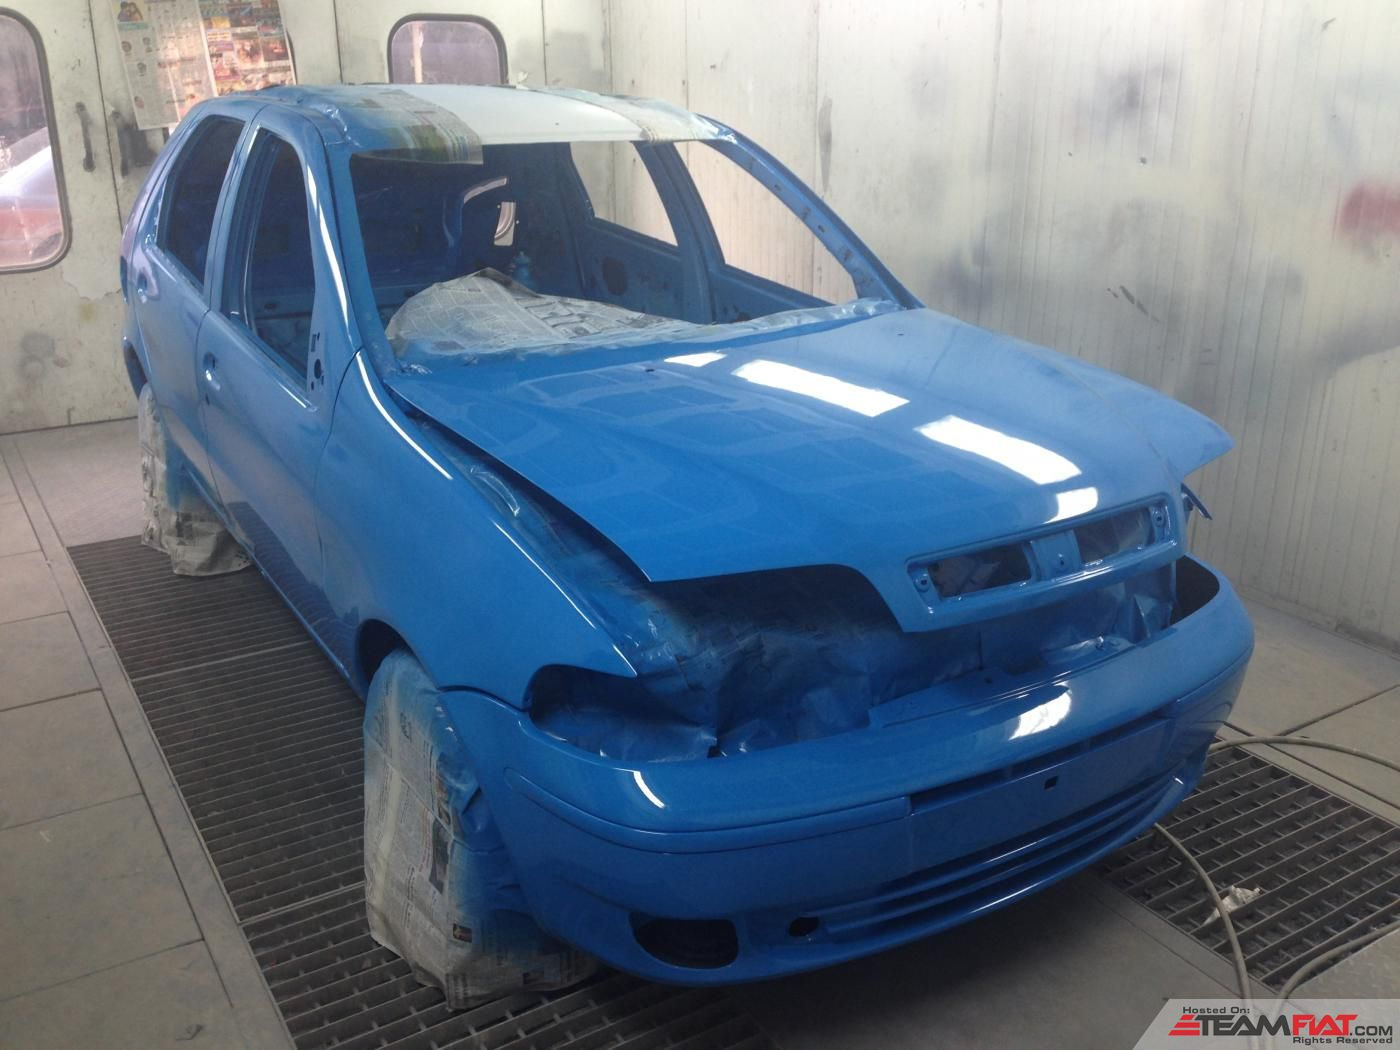 Car in Paint Booth.jpg